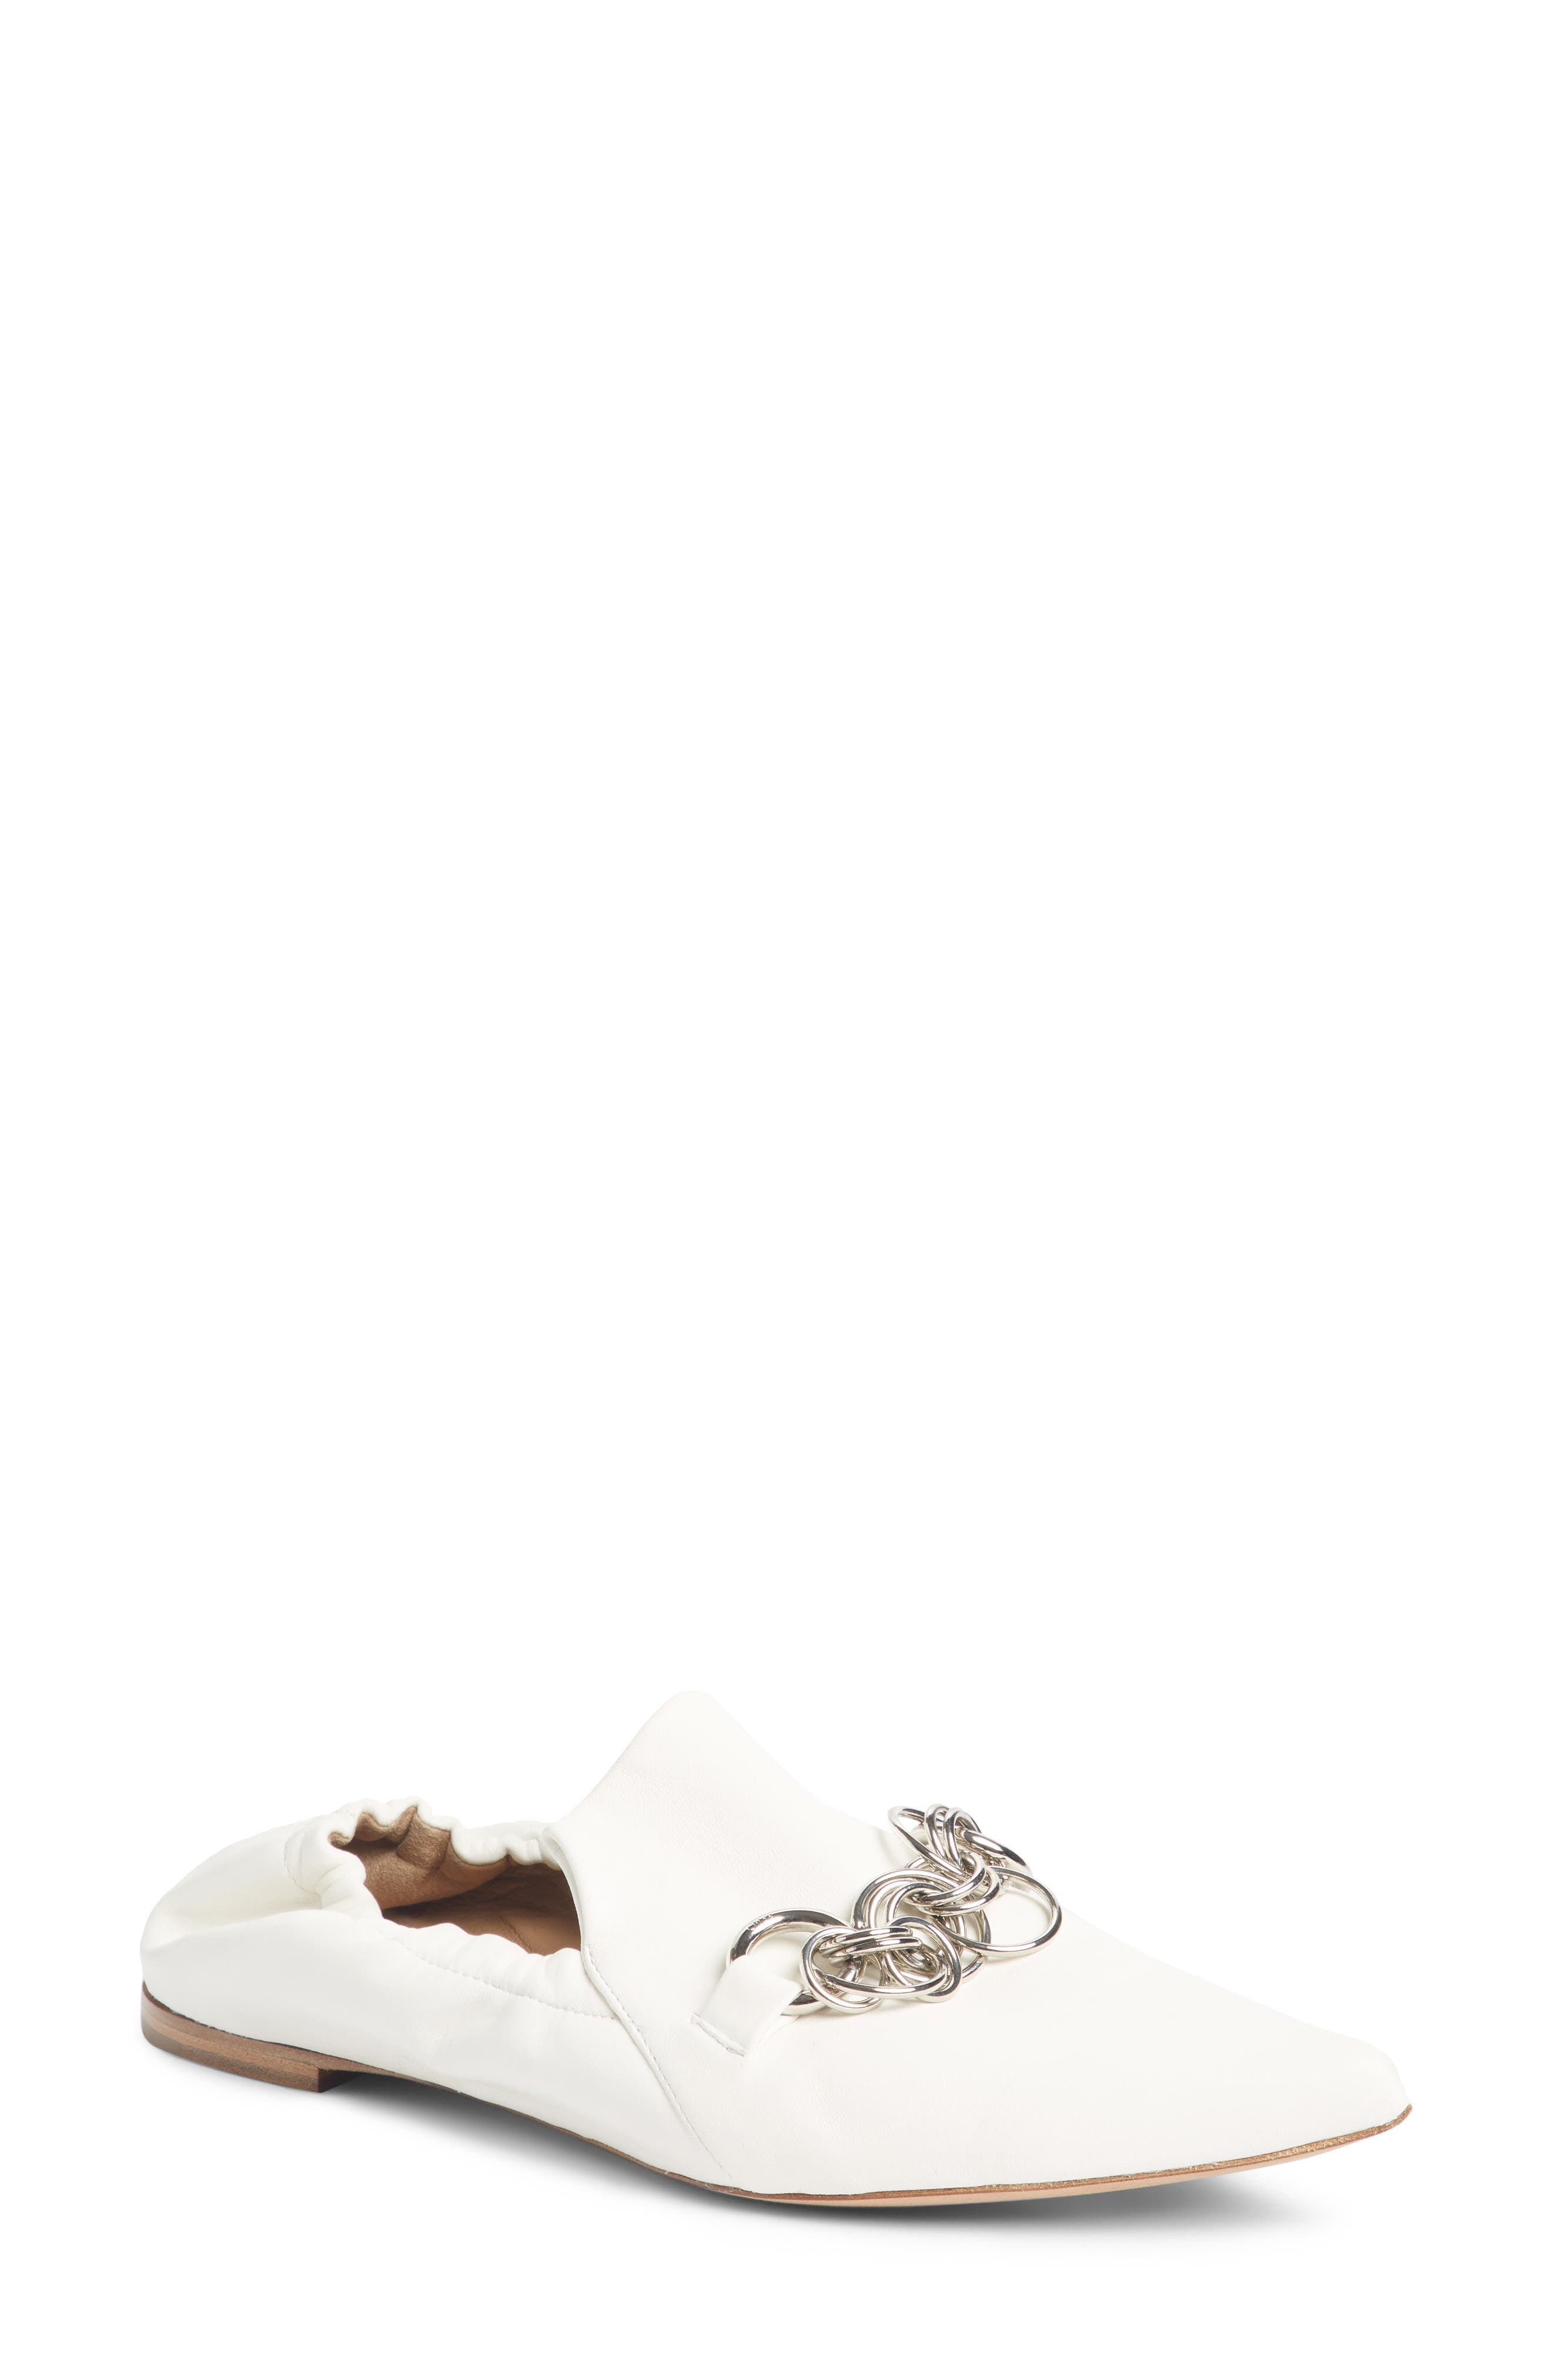 Chloe Reese Chain Bit Loafer Flat, White